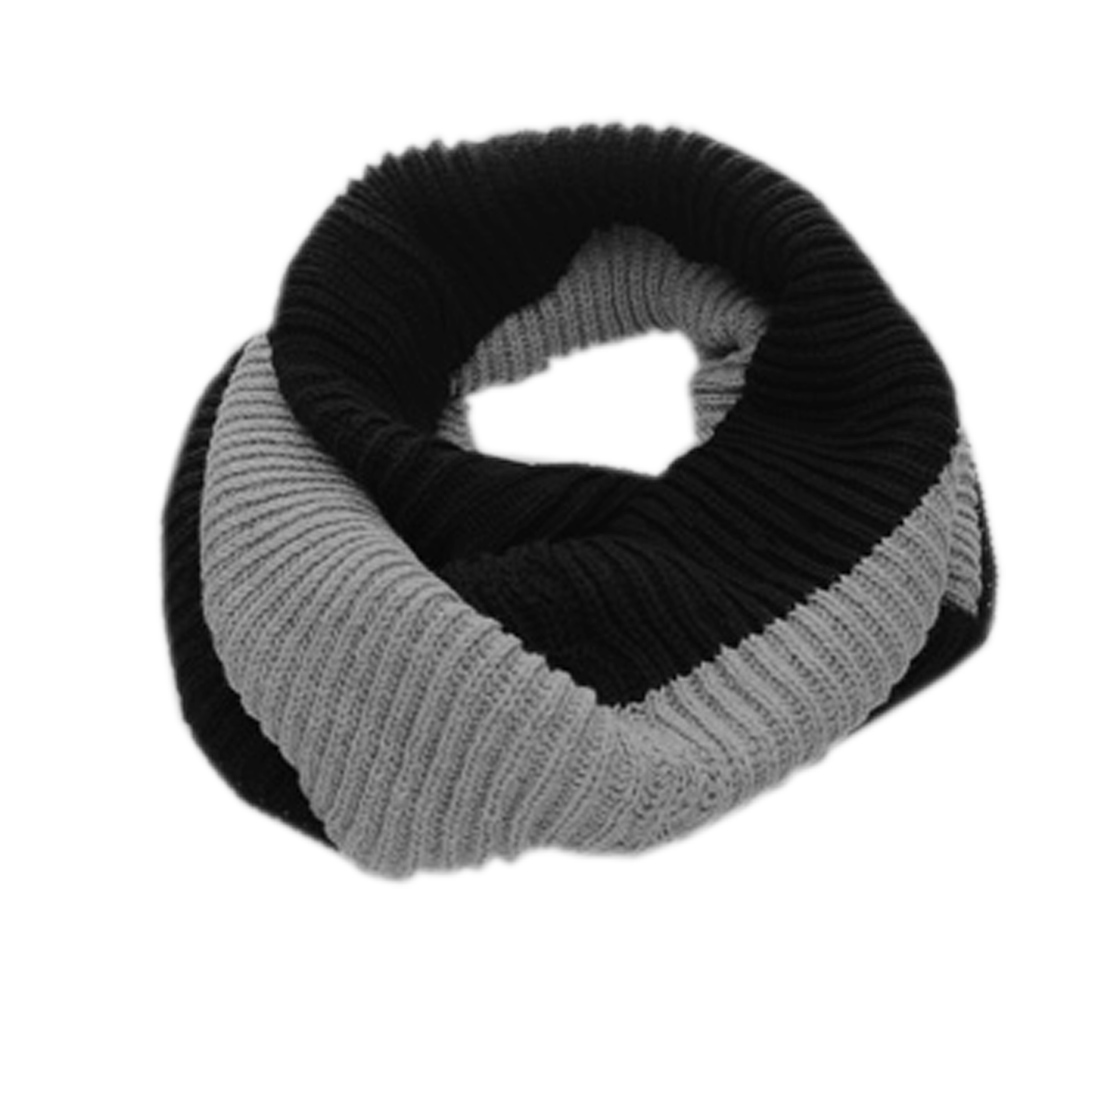 Contemporary Tube Scarf Knitting Patterns Gallery - Blanket Knitting ...